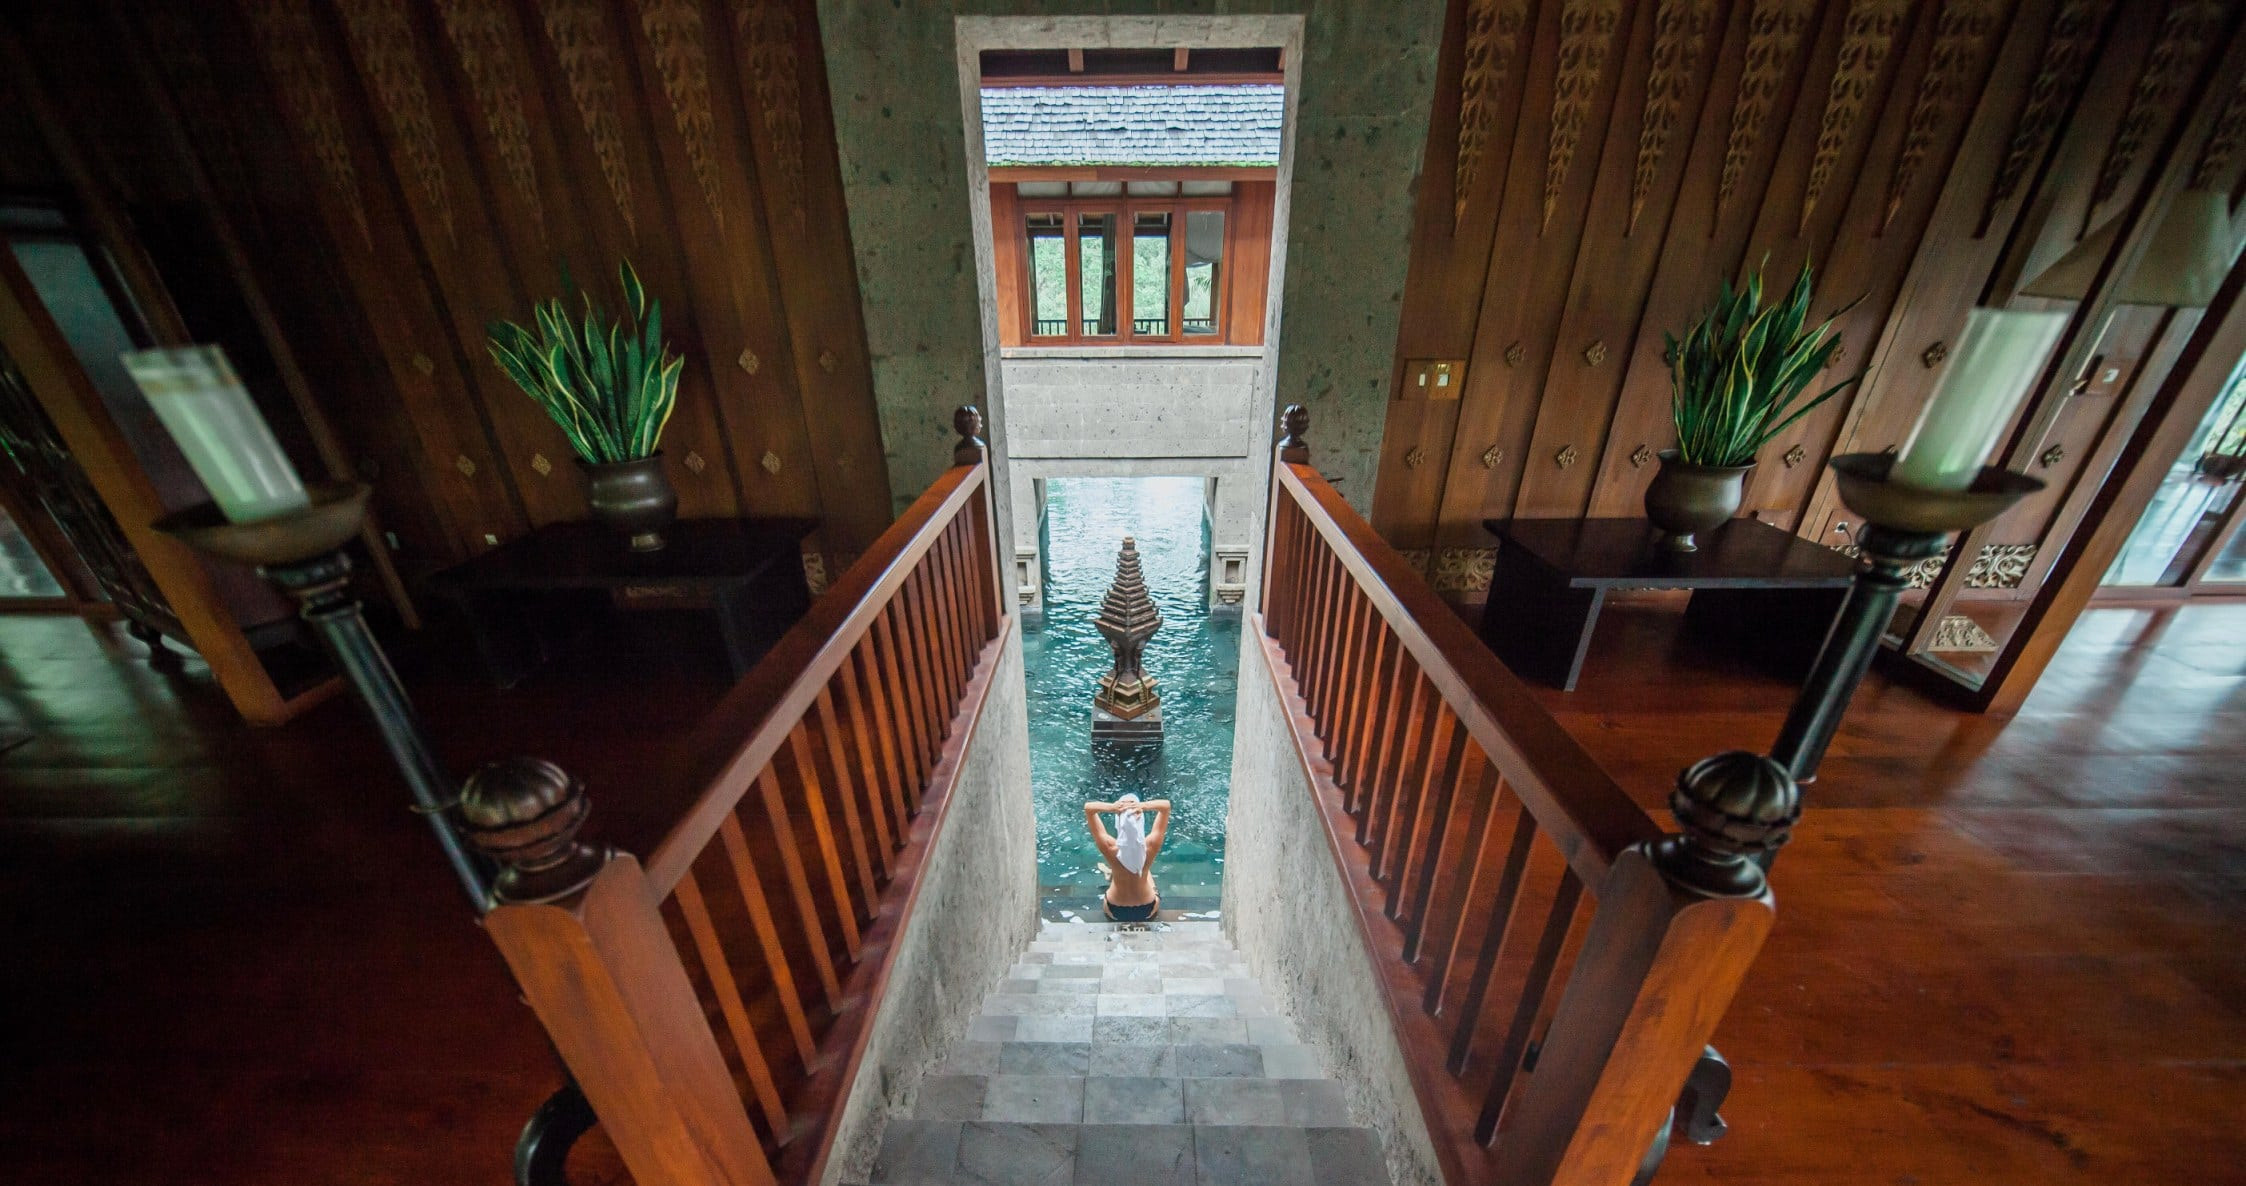 CompareRetreats.com founder Dervla Louli checks out COMO Shambhala's three-day Ayurveda programme | Image courtesy of Wandersnap